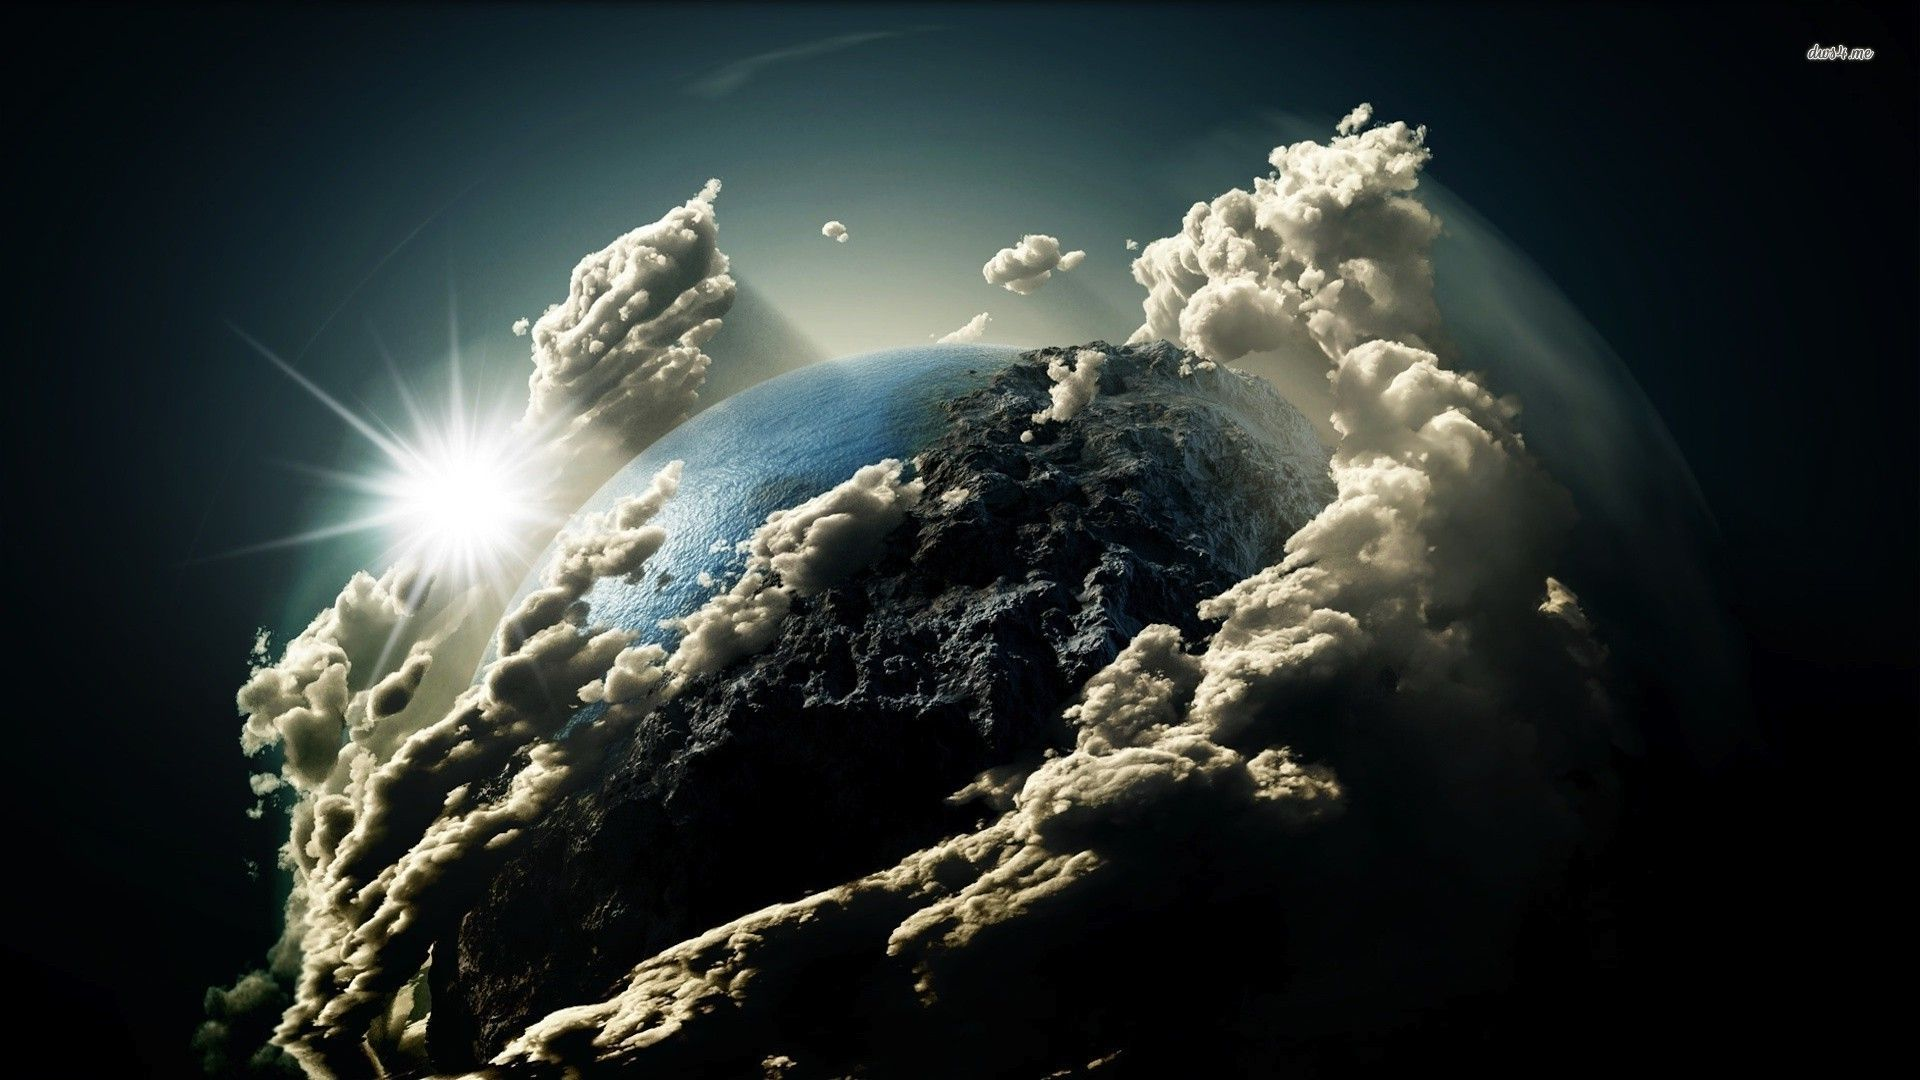 Earth Clouds Wallpaper 1920x1080 Clouds around the